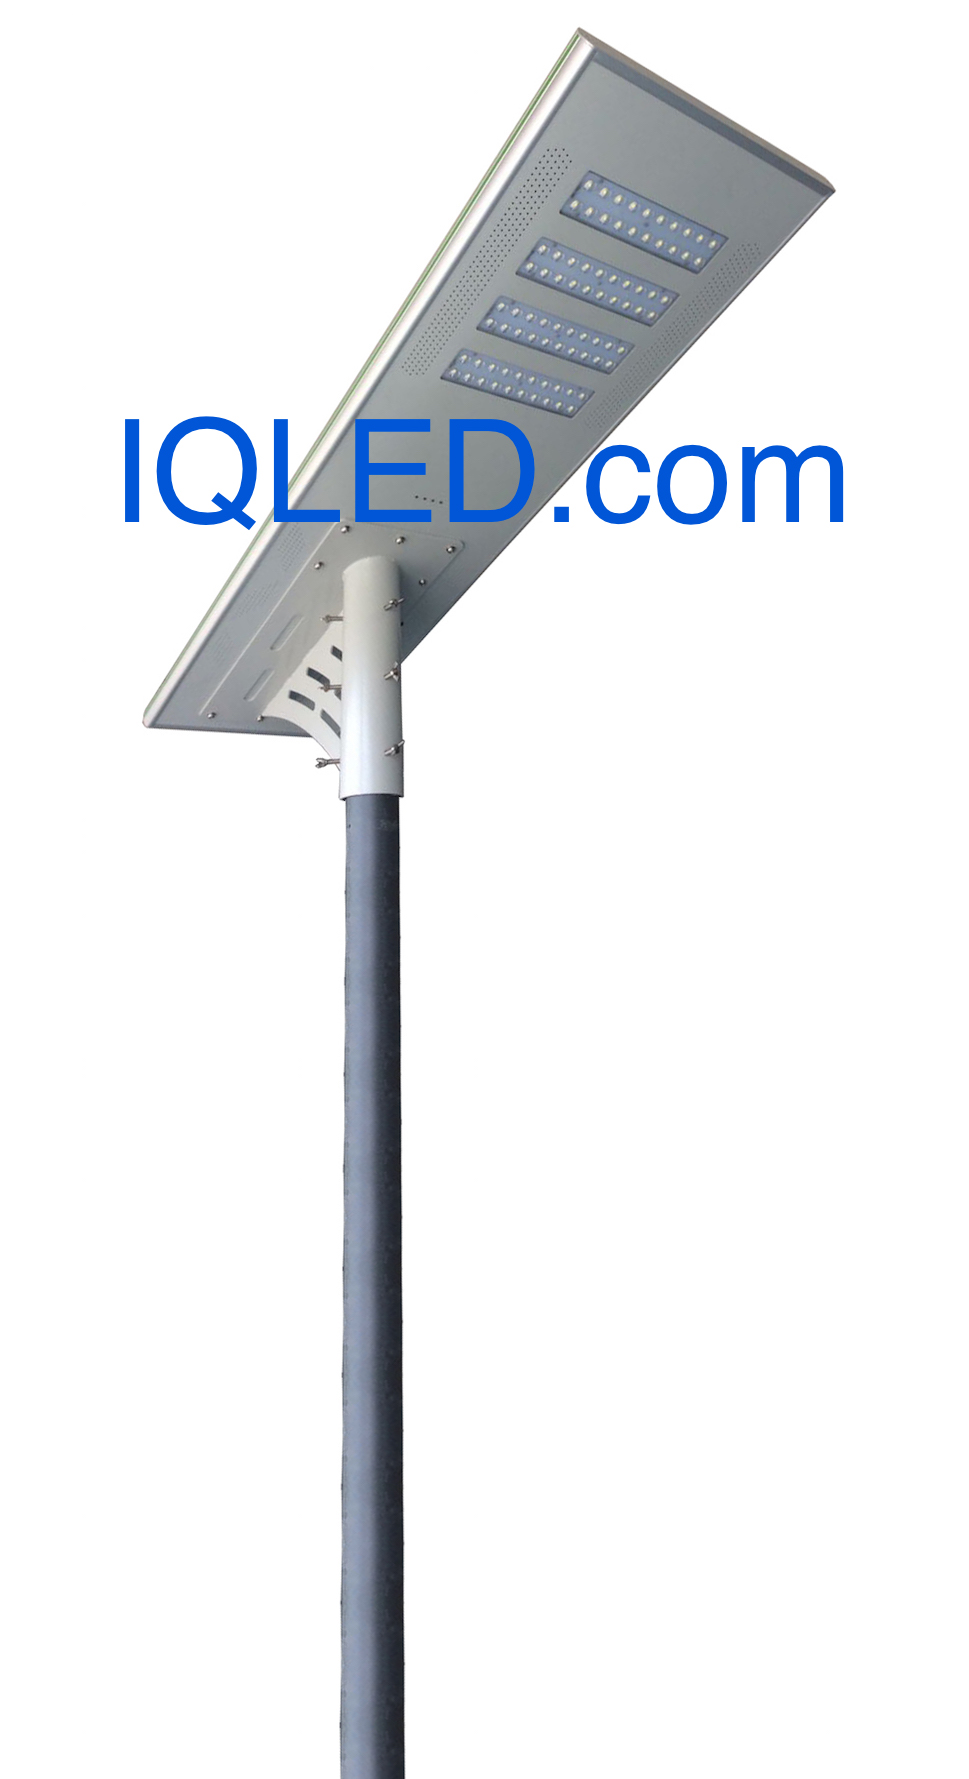 GeneralCommunications Cloud Services Solar Light all in one integrated 8800 Lumens 80 Watts